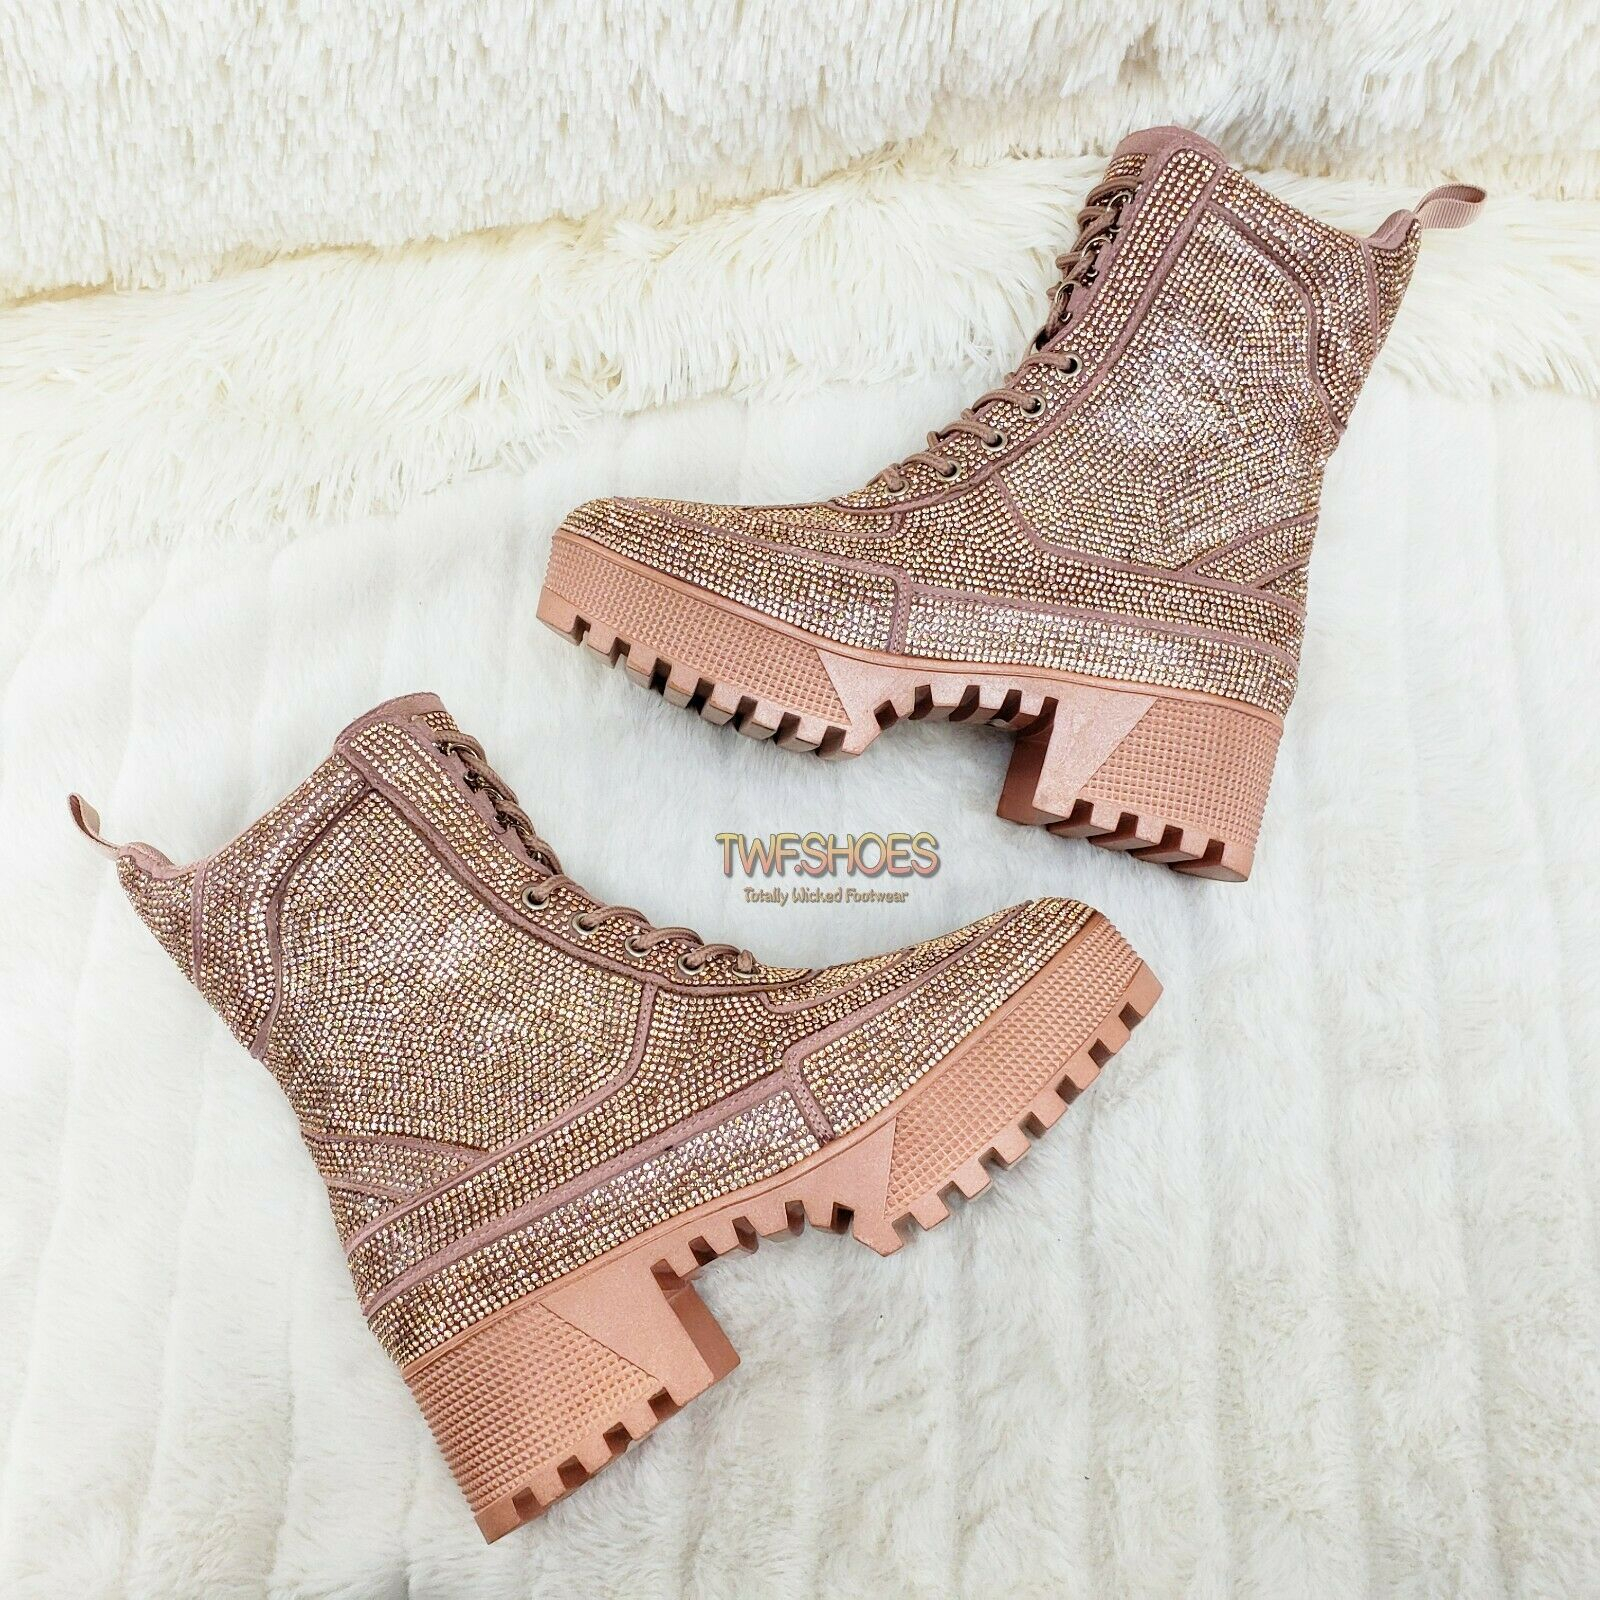 Image of CR Queen Pin 2 Rose Gold Rhinestone Lace Up Platform Sneaker Combat Ankle Boots